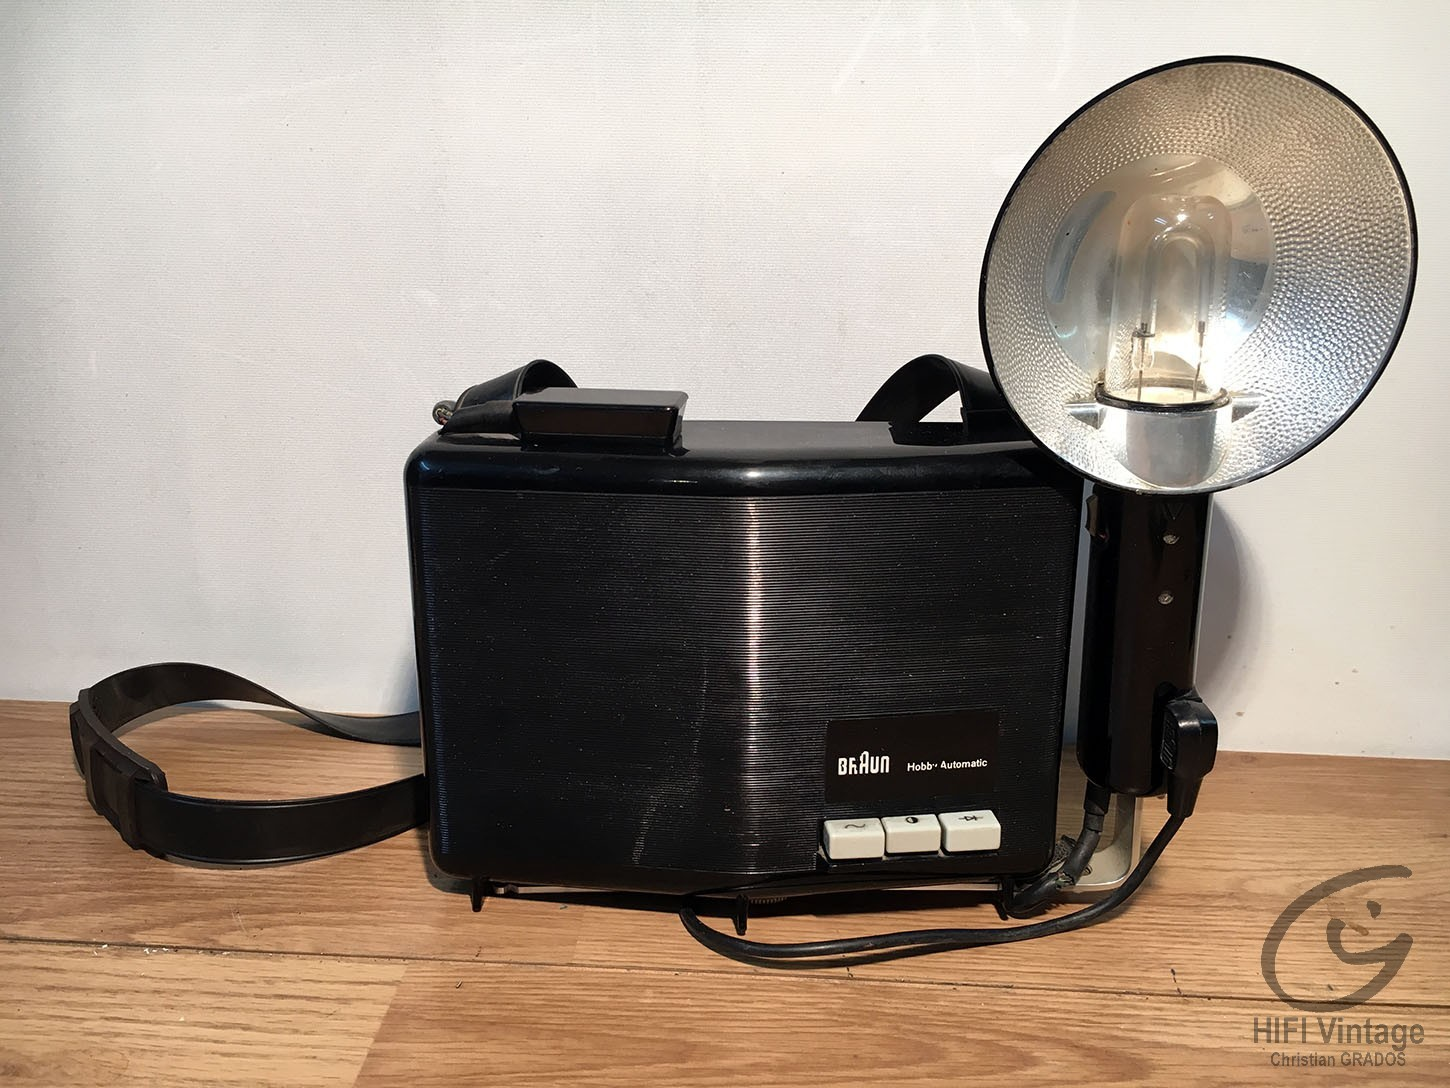 BRAUN Hobby flash photo Hifi vintage réparations